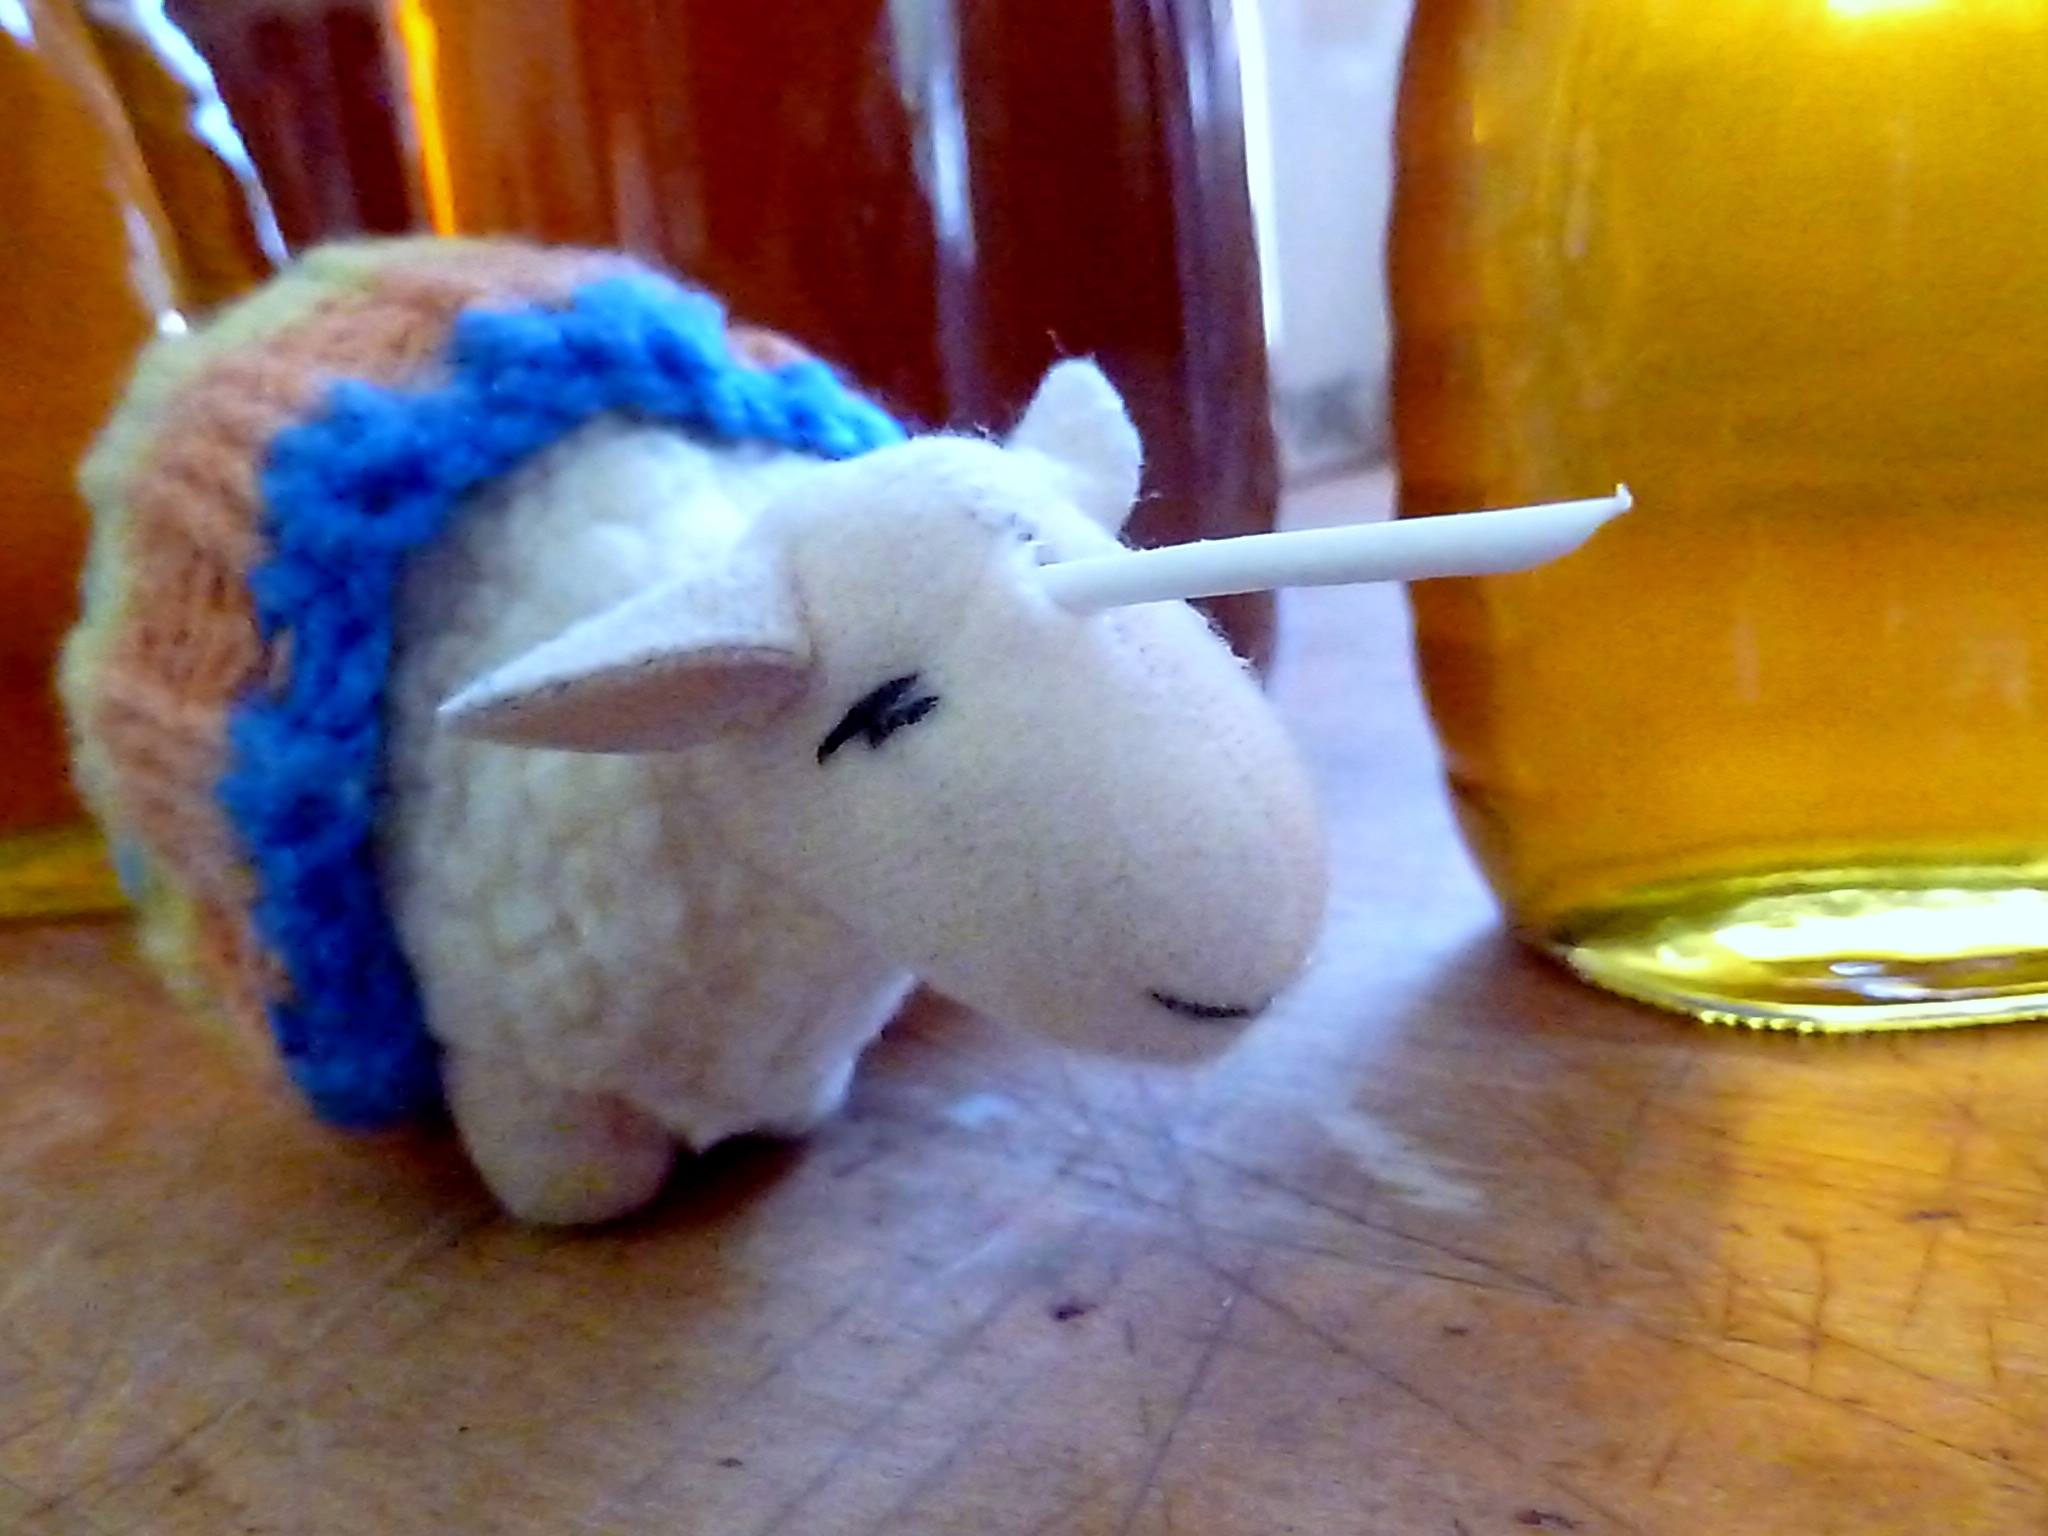 Rutherford visits the honey room, where he gets to taste some delicious honey.